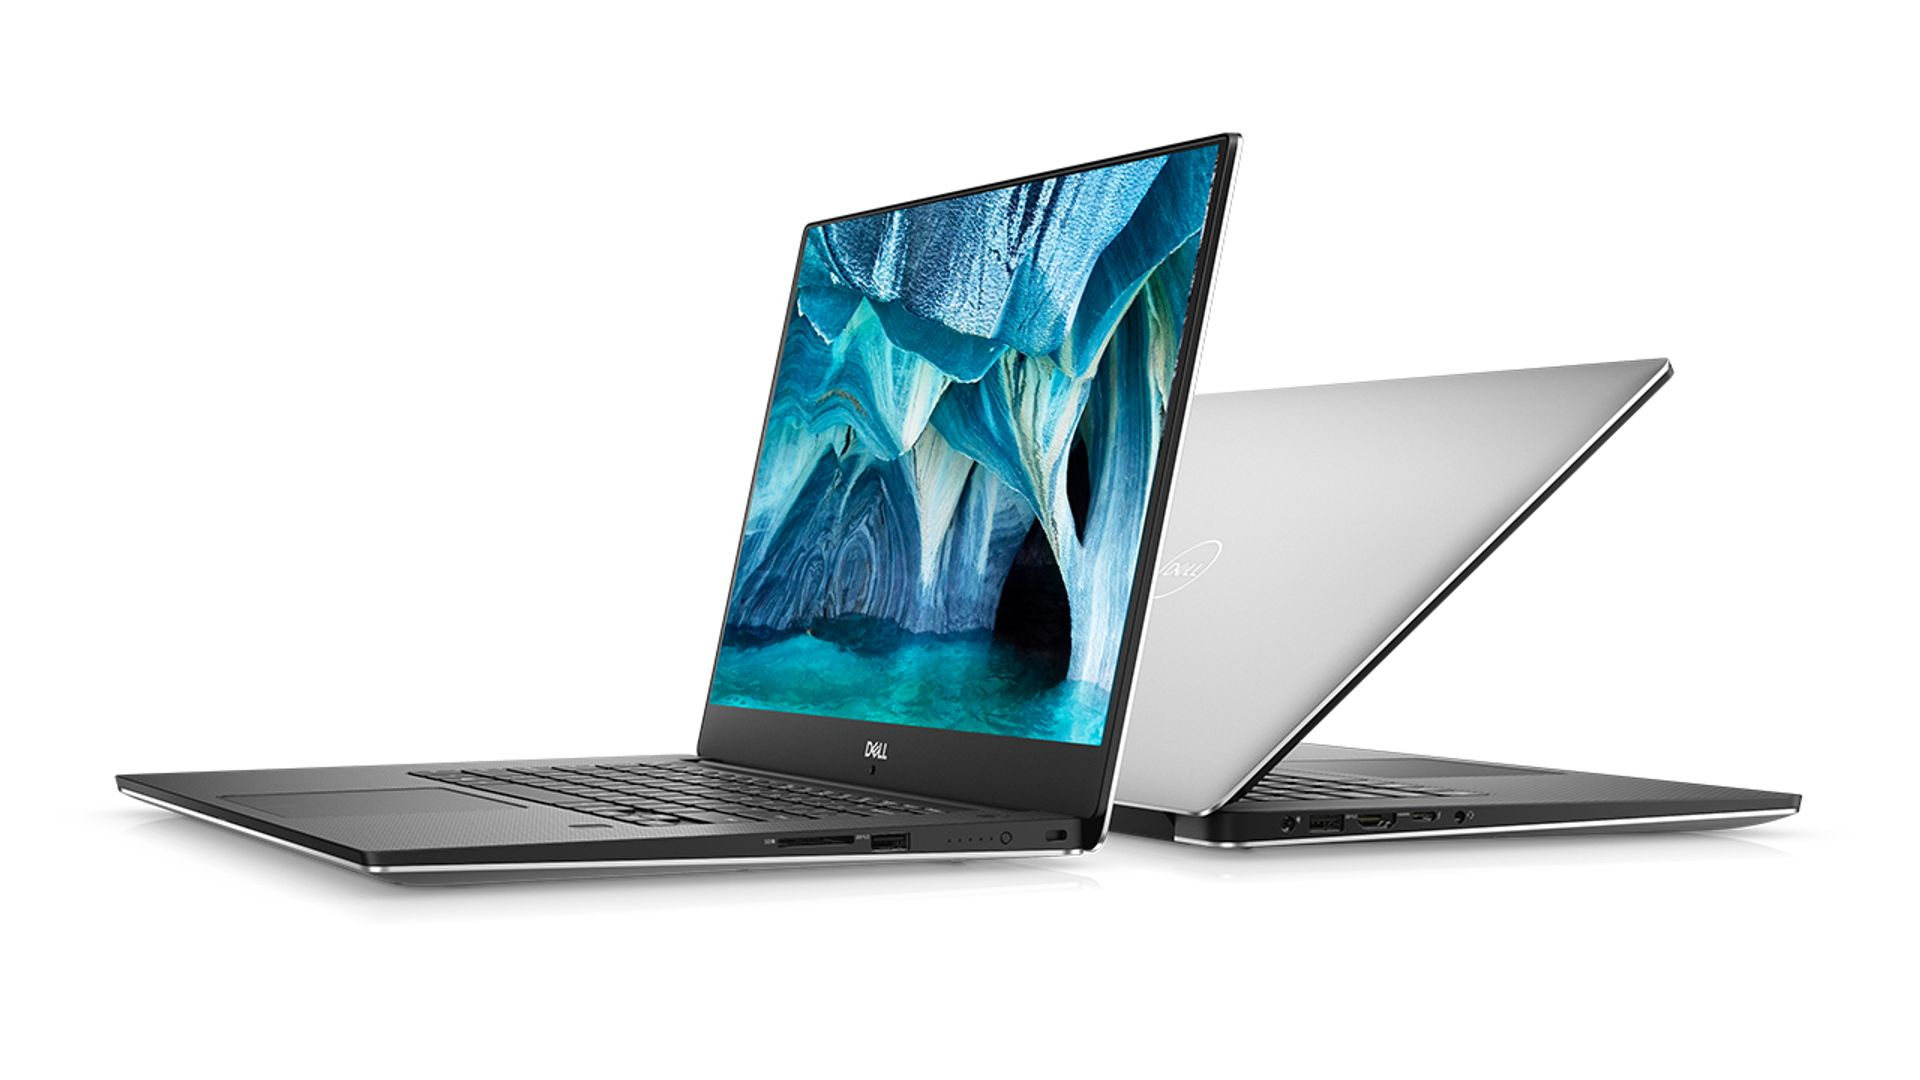 Video: XPS 15 laptop (2019) productoverzicht 0:52